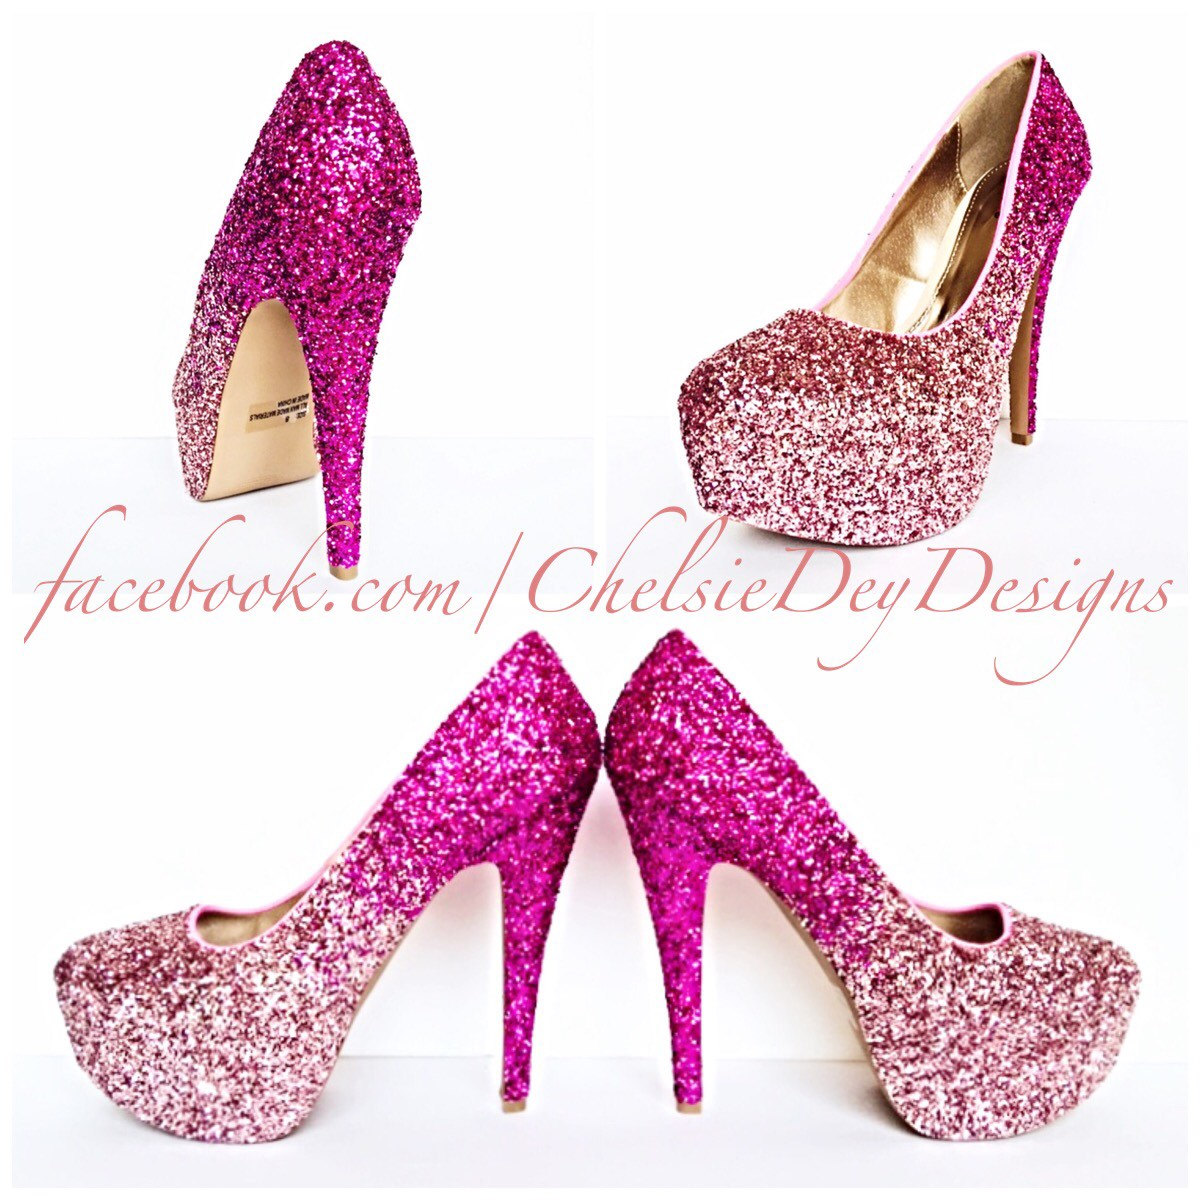 Glitter High Heels - Hot Pink Pumps - Light Pink Ombre Platform ...